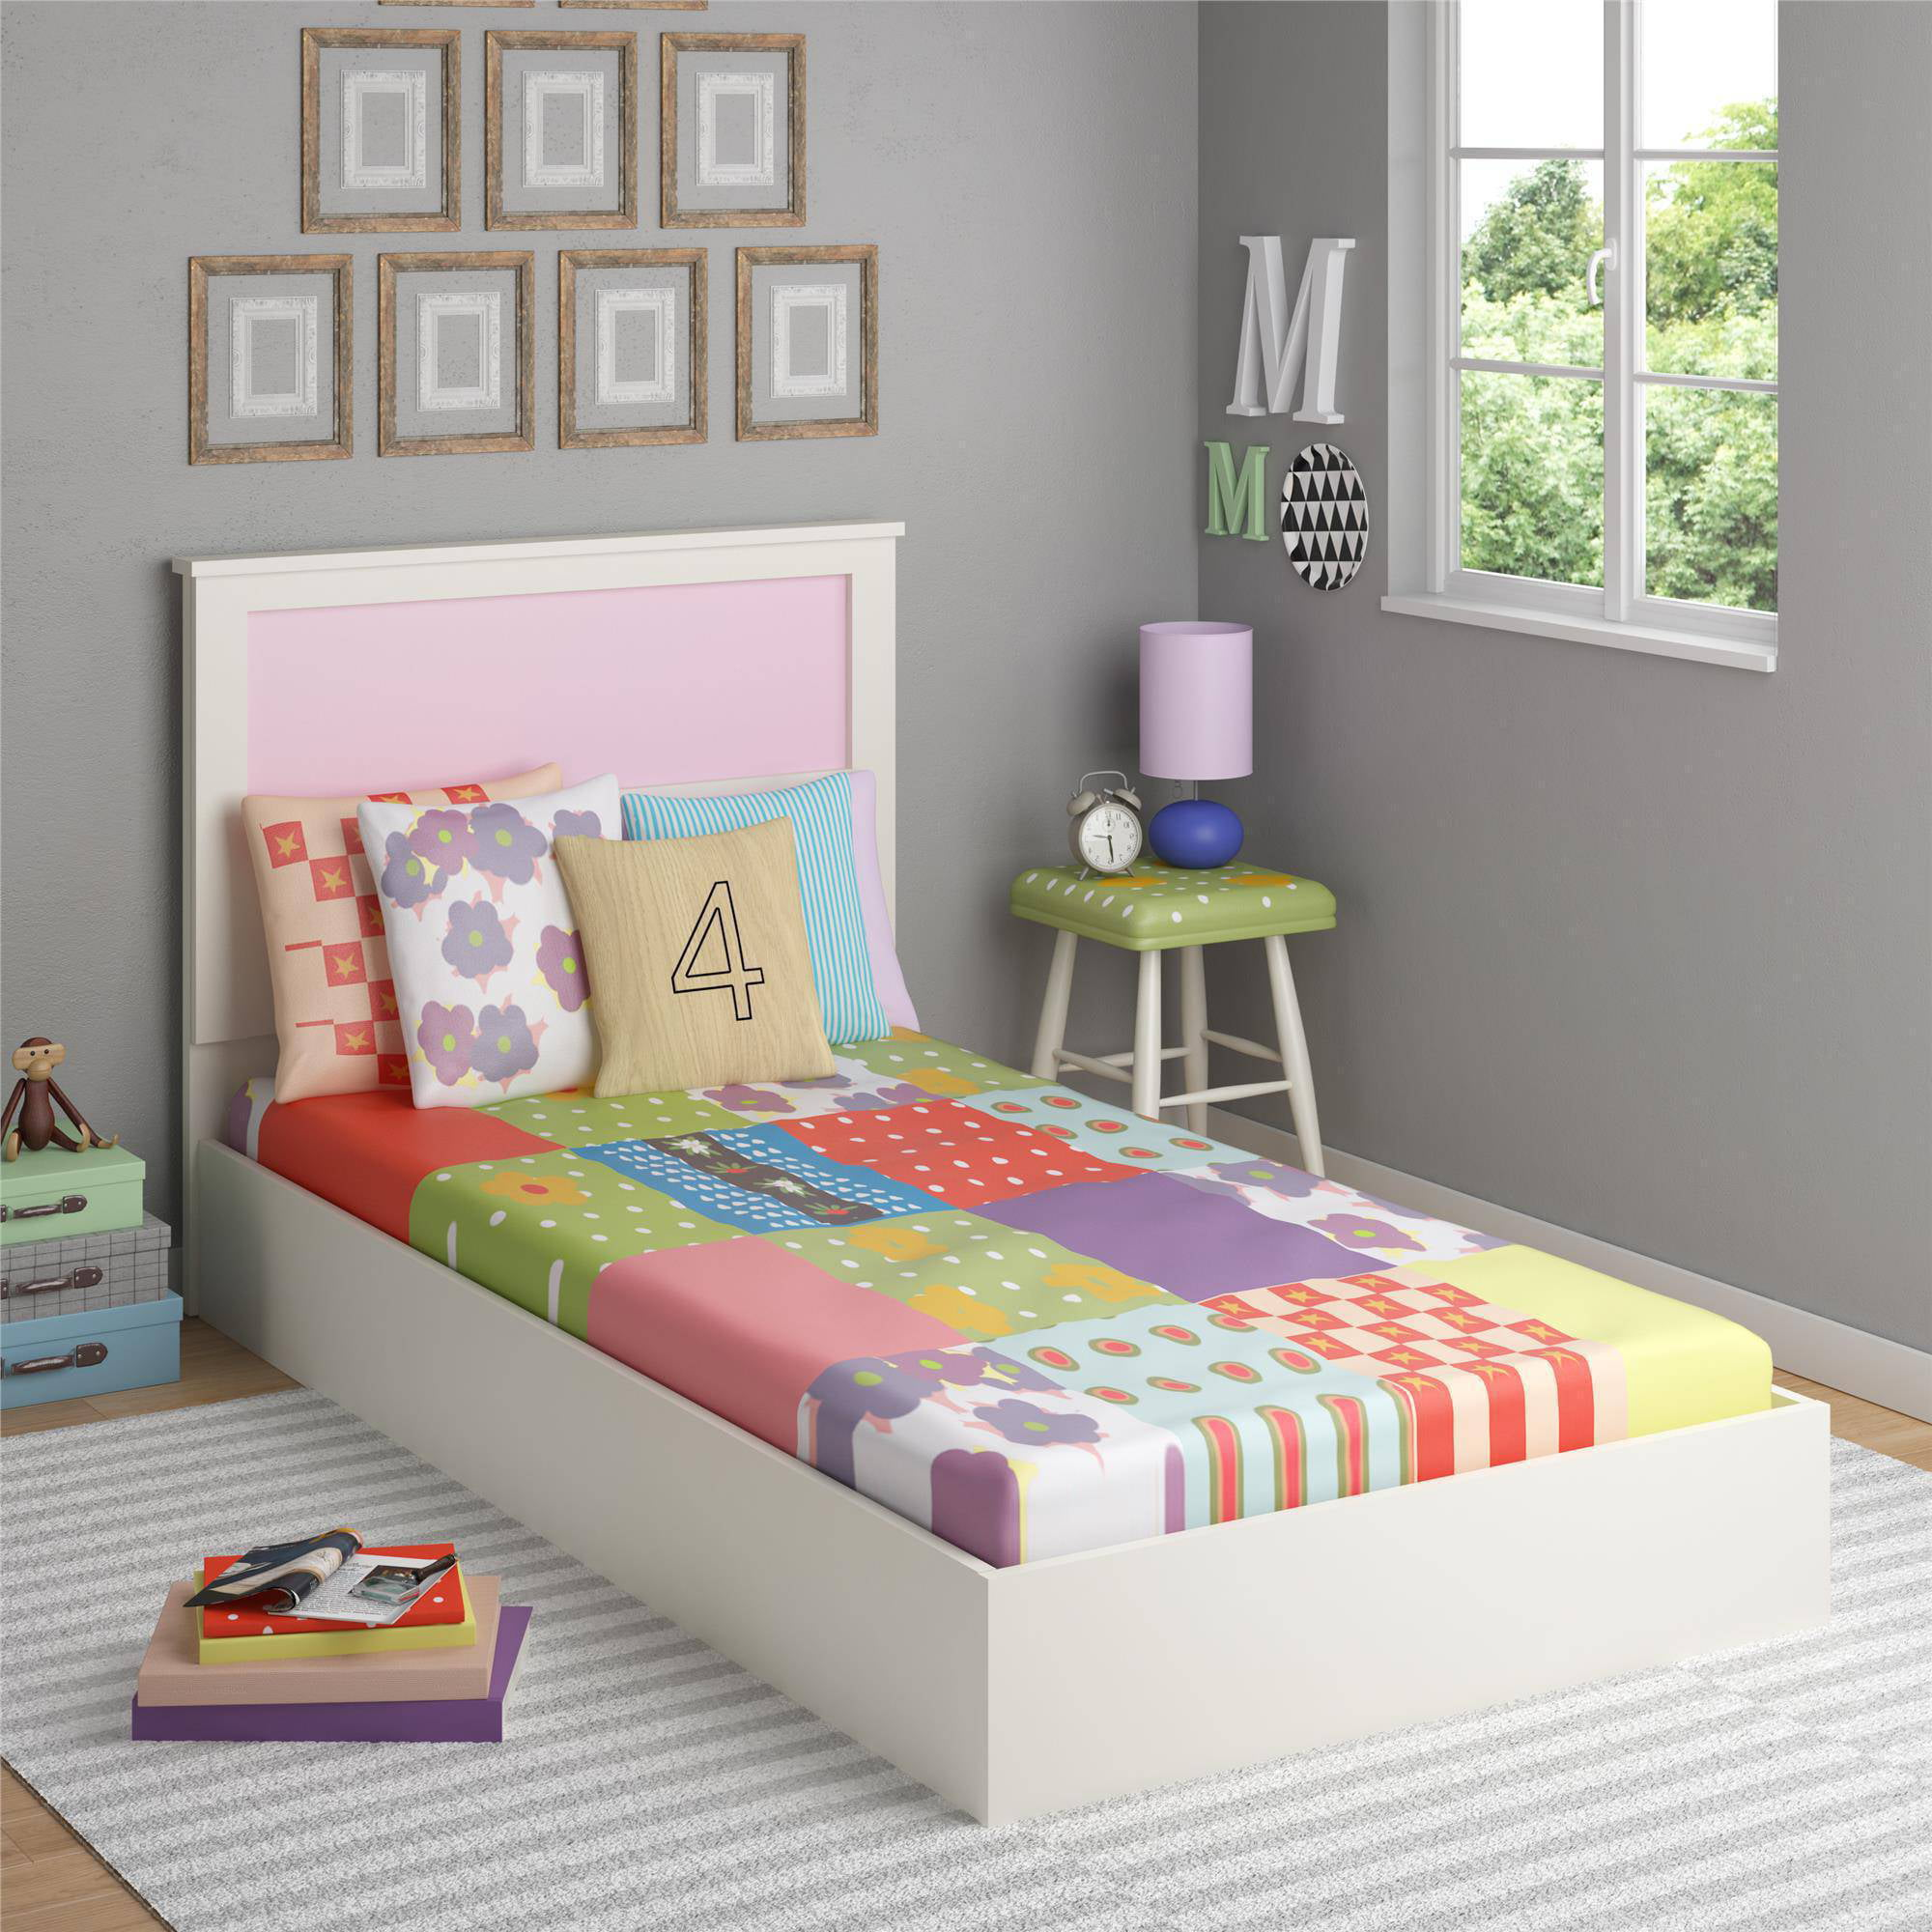 Ameriwood Home Skyler Twin Bed with Reversible Headboard, Multiple Colors by Ameriwood